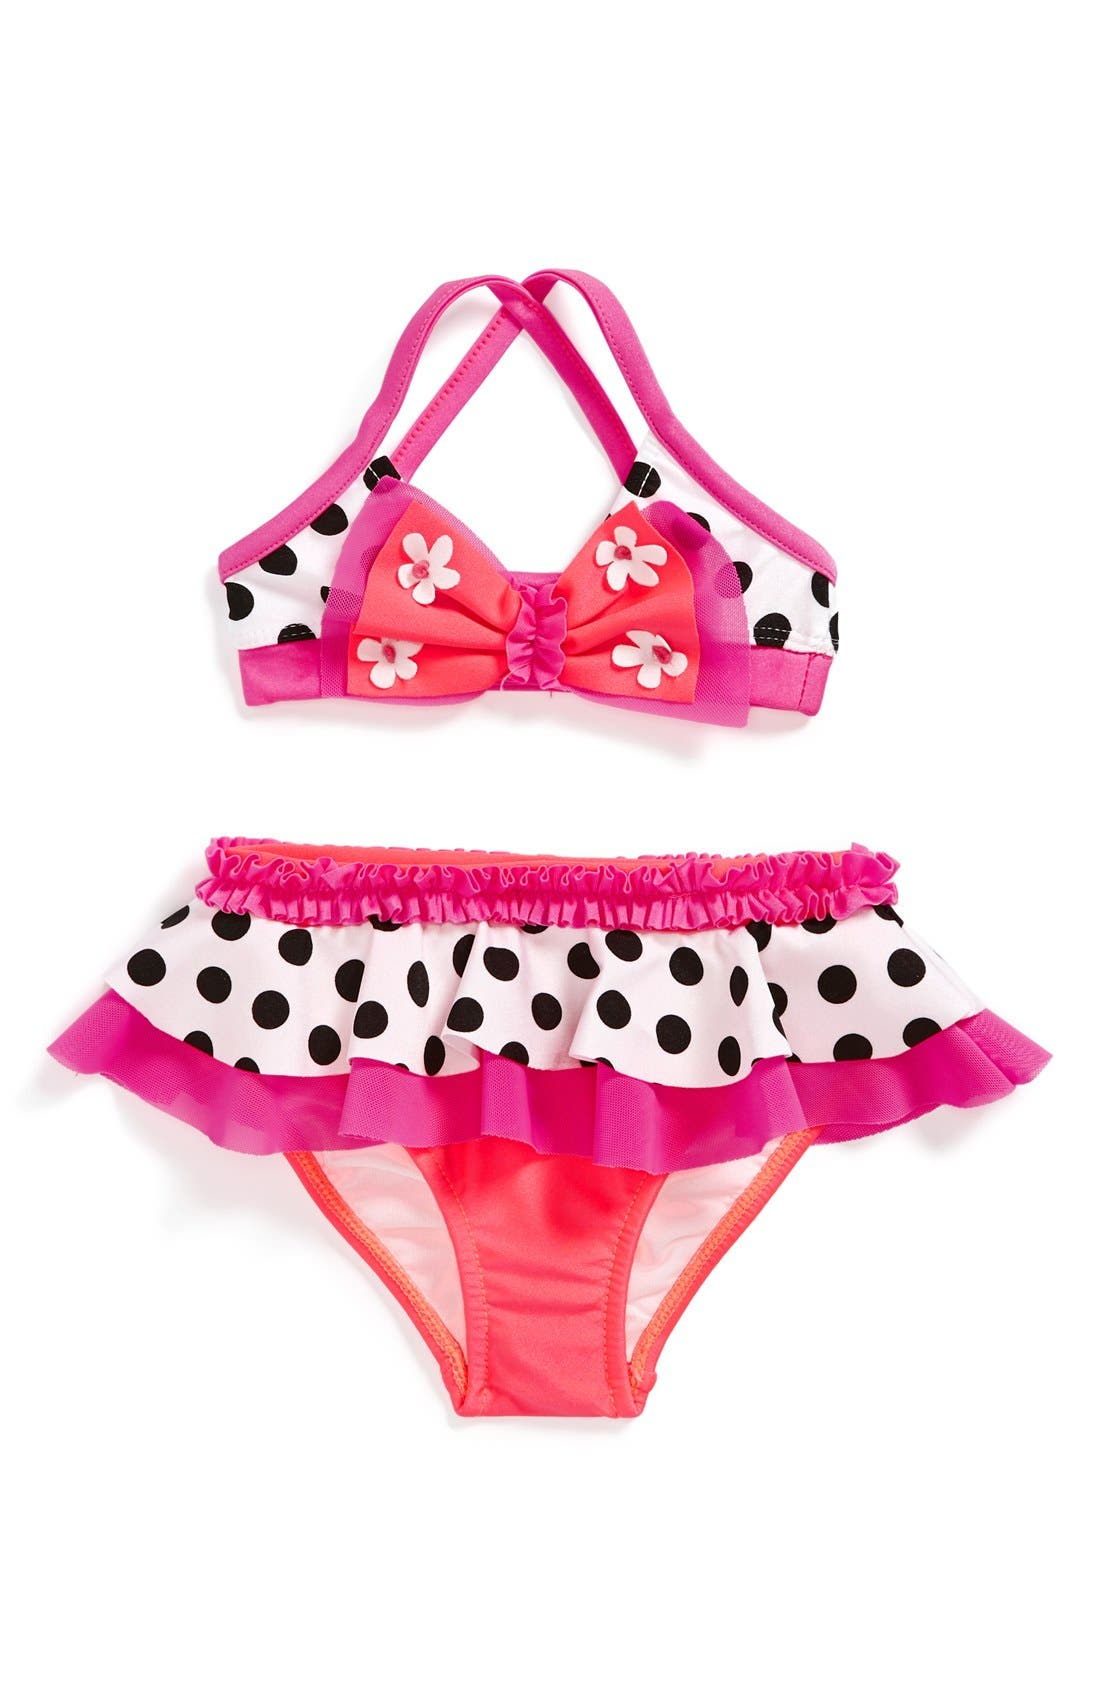 Alternate Image 1 Selected - Love U Lots 'Butterfly' Two-Piece Swimsuit (Baby Girls)